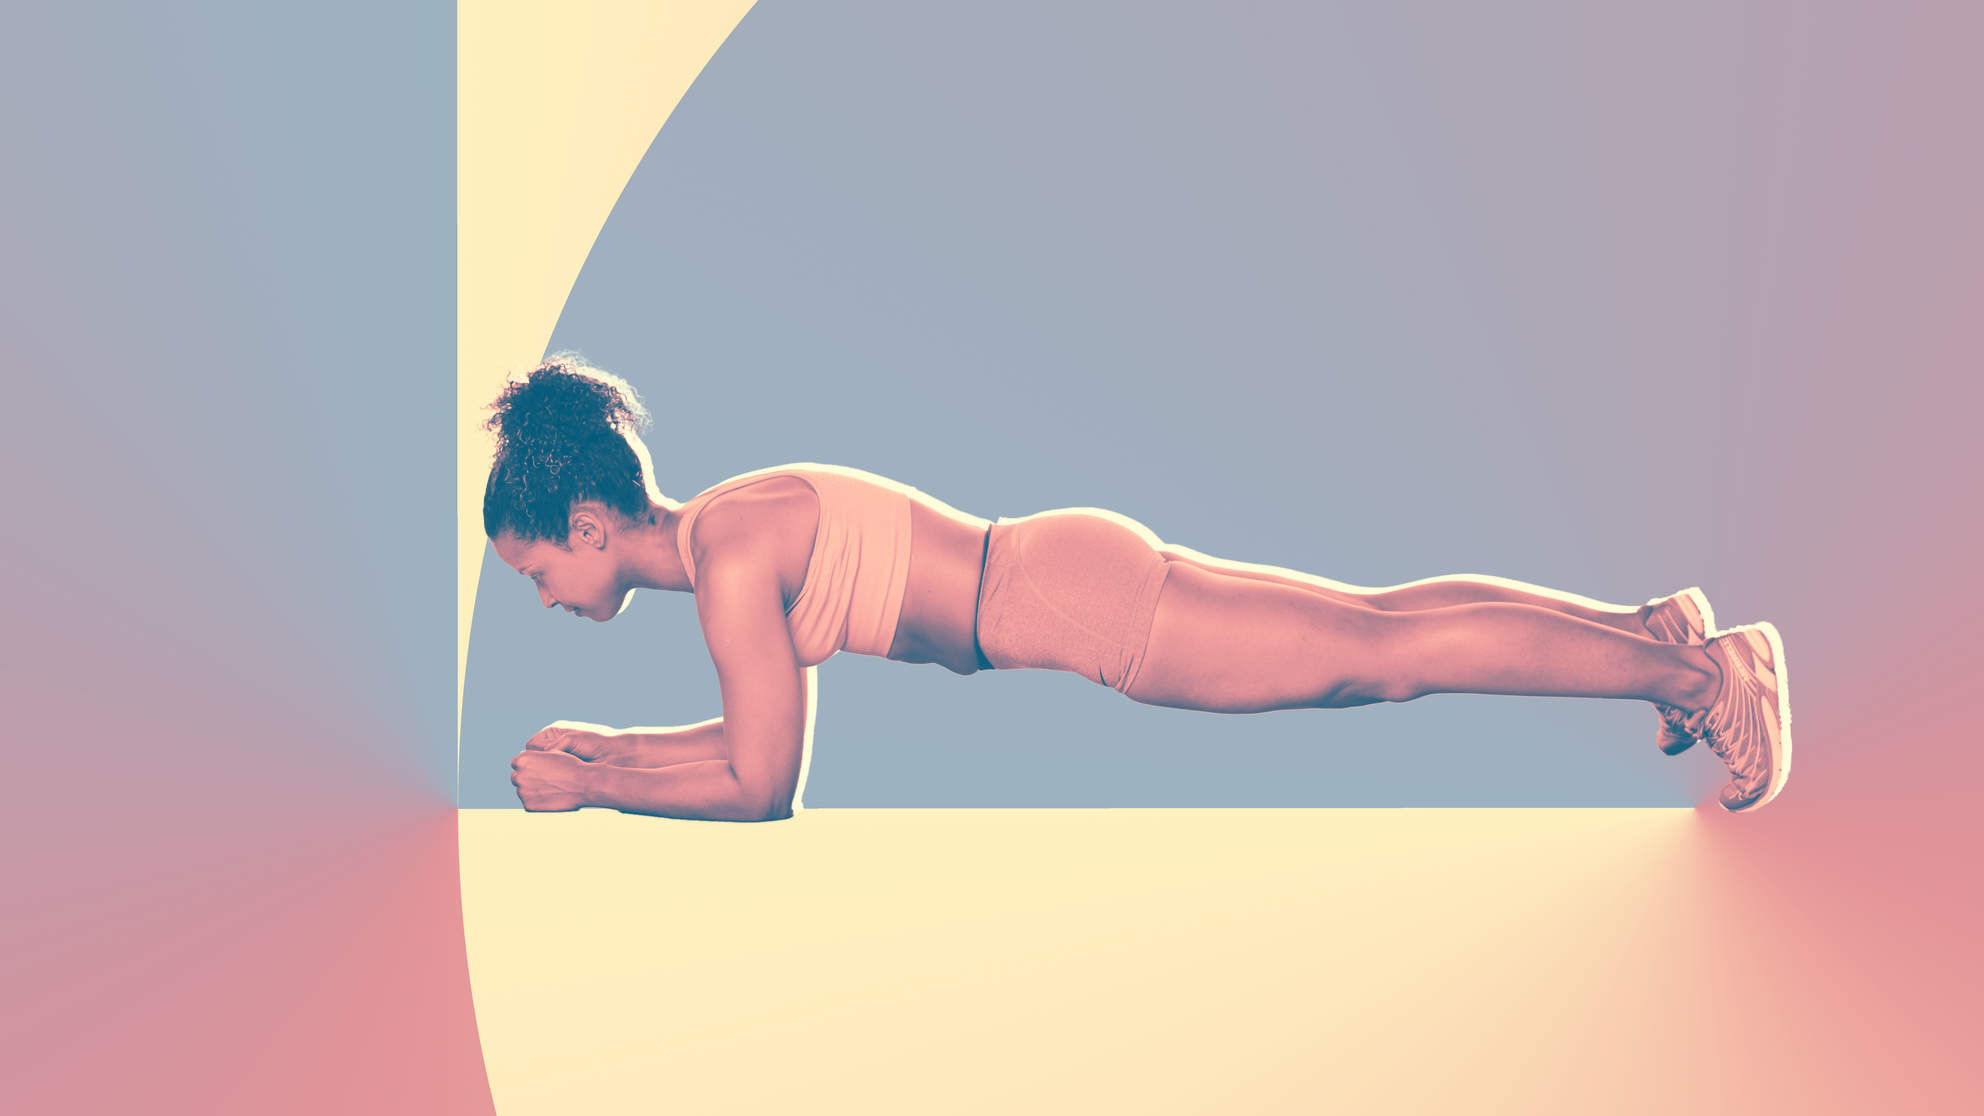 bodyweight-challenge woman health exercise wellbeing muscle strength plank